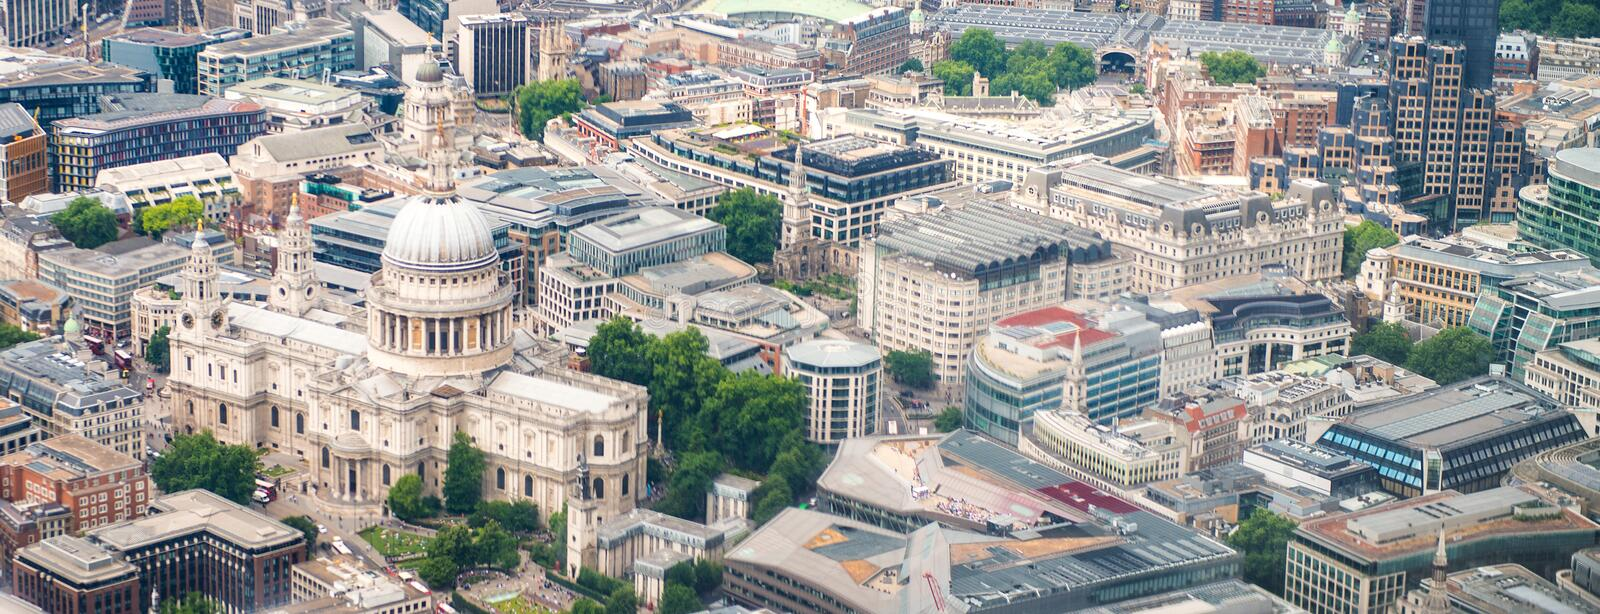 St Paul Cathedral from helicopter, London - UK royalty free stock photo